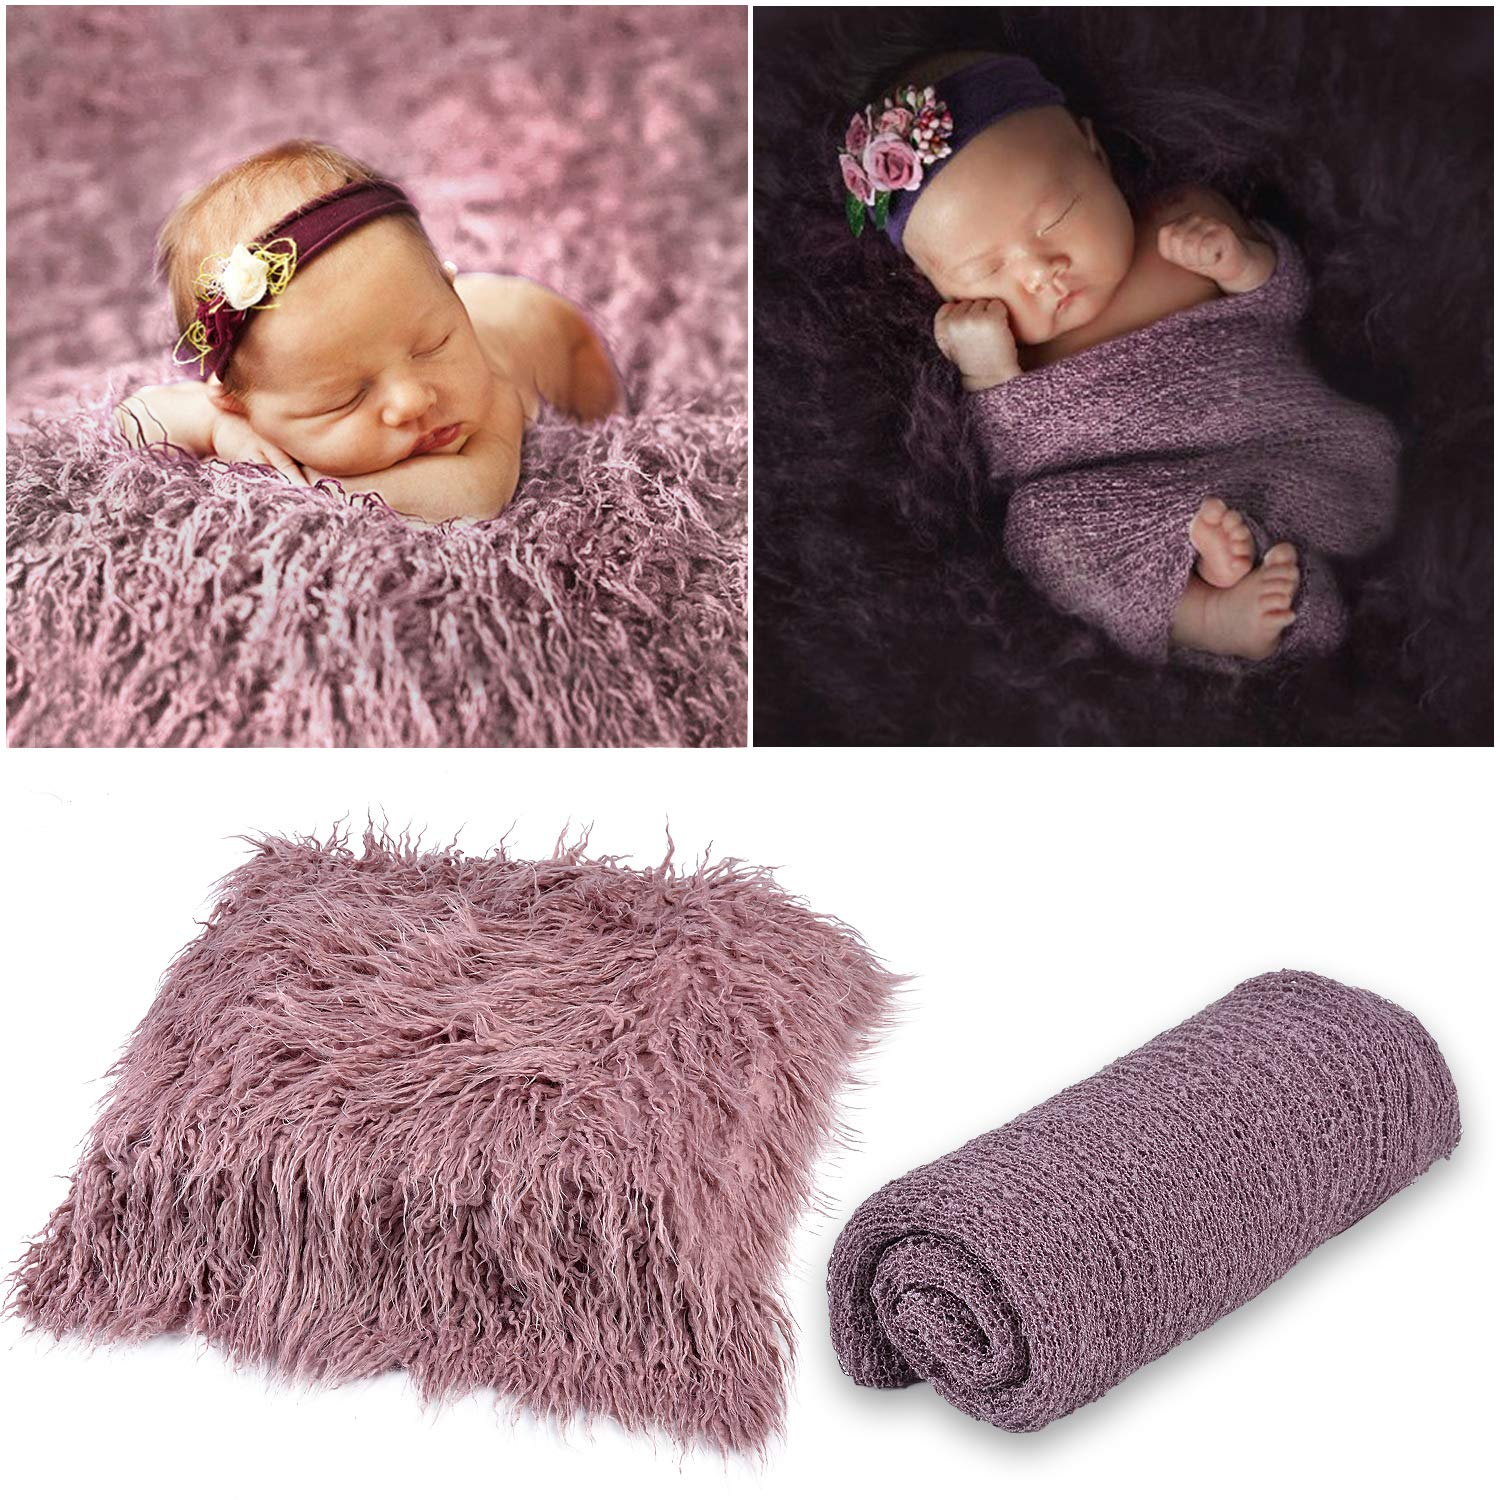 Kapmore 2PCS Baby Photo Prop Soft Warm Swaddle Blanket Photography Mat for Newborn by Kapmore